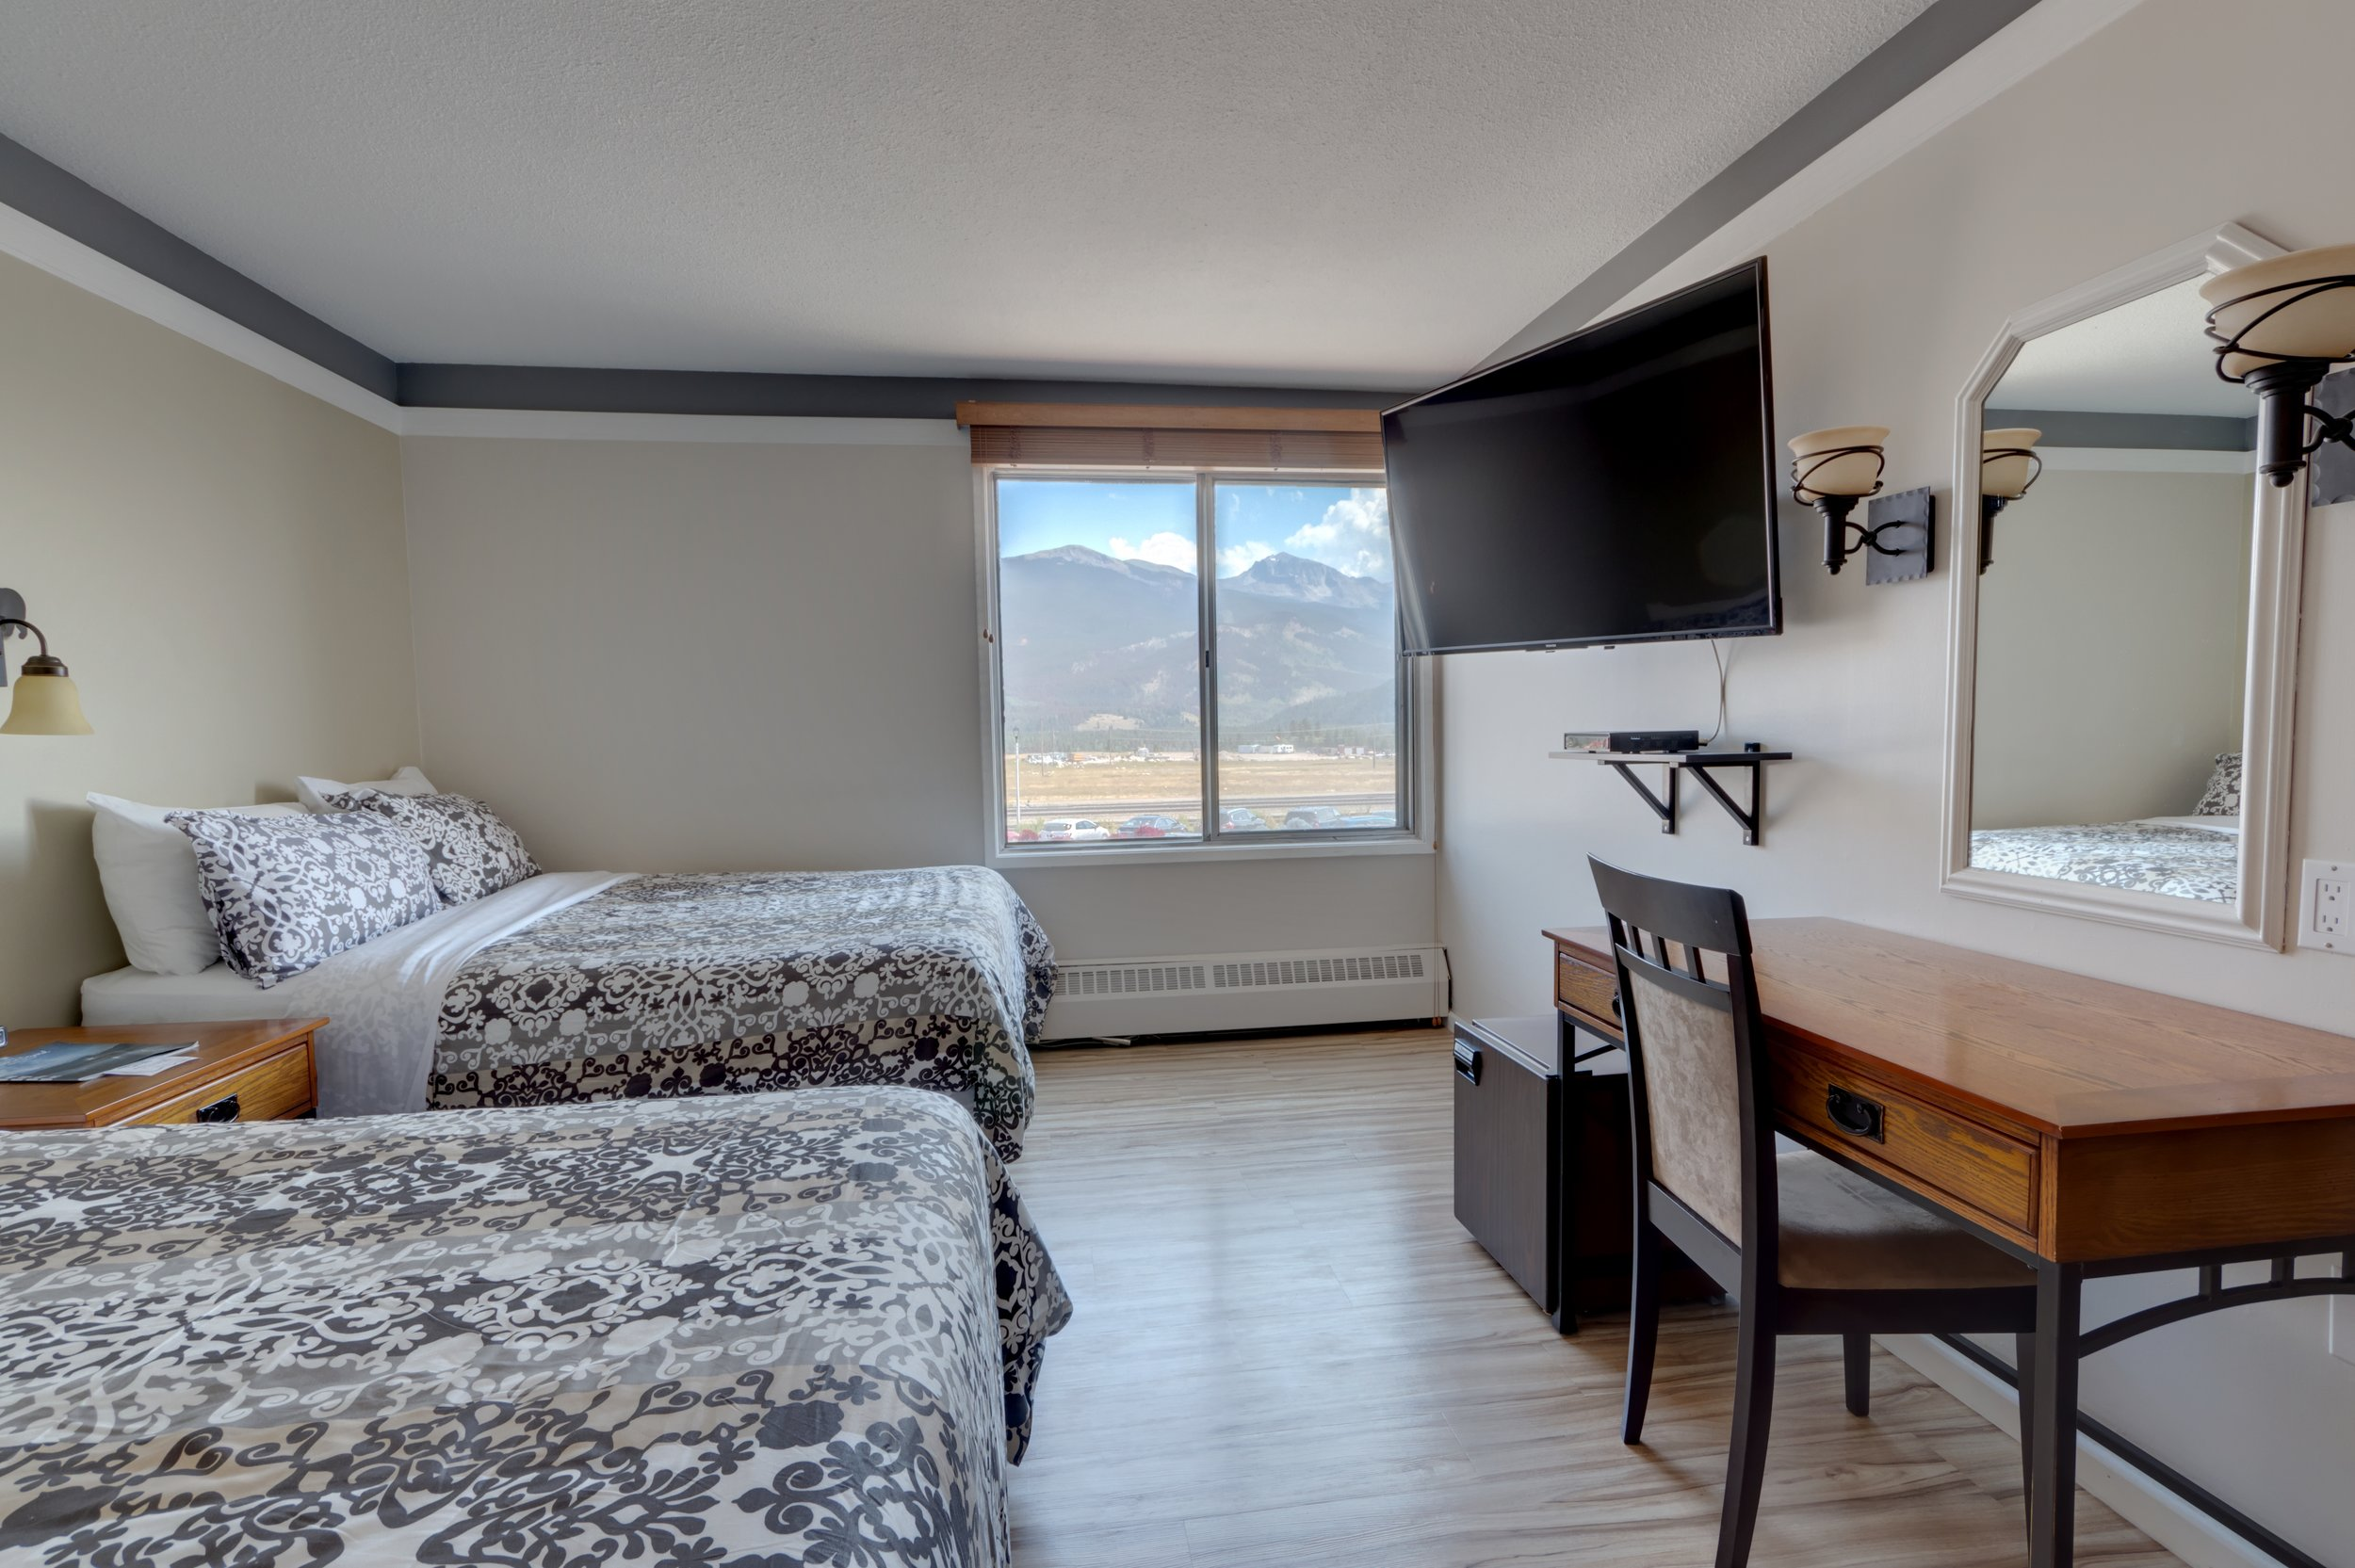 TWIN MOUNTAIN VIEW ROOM (TWO DOUBLE BEDS)